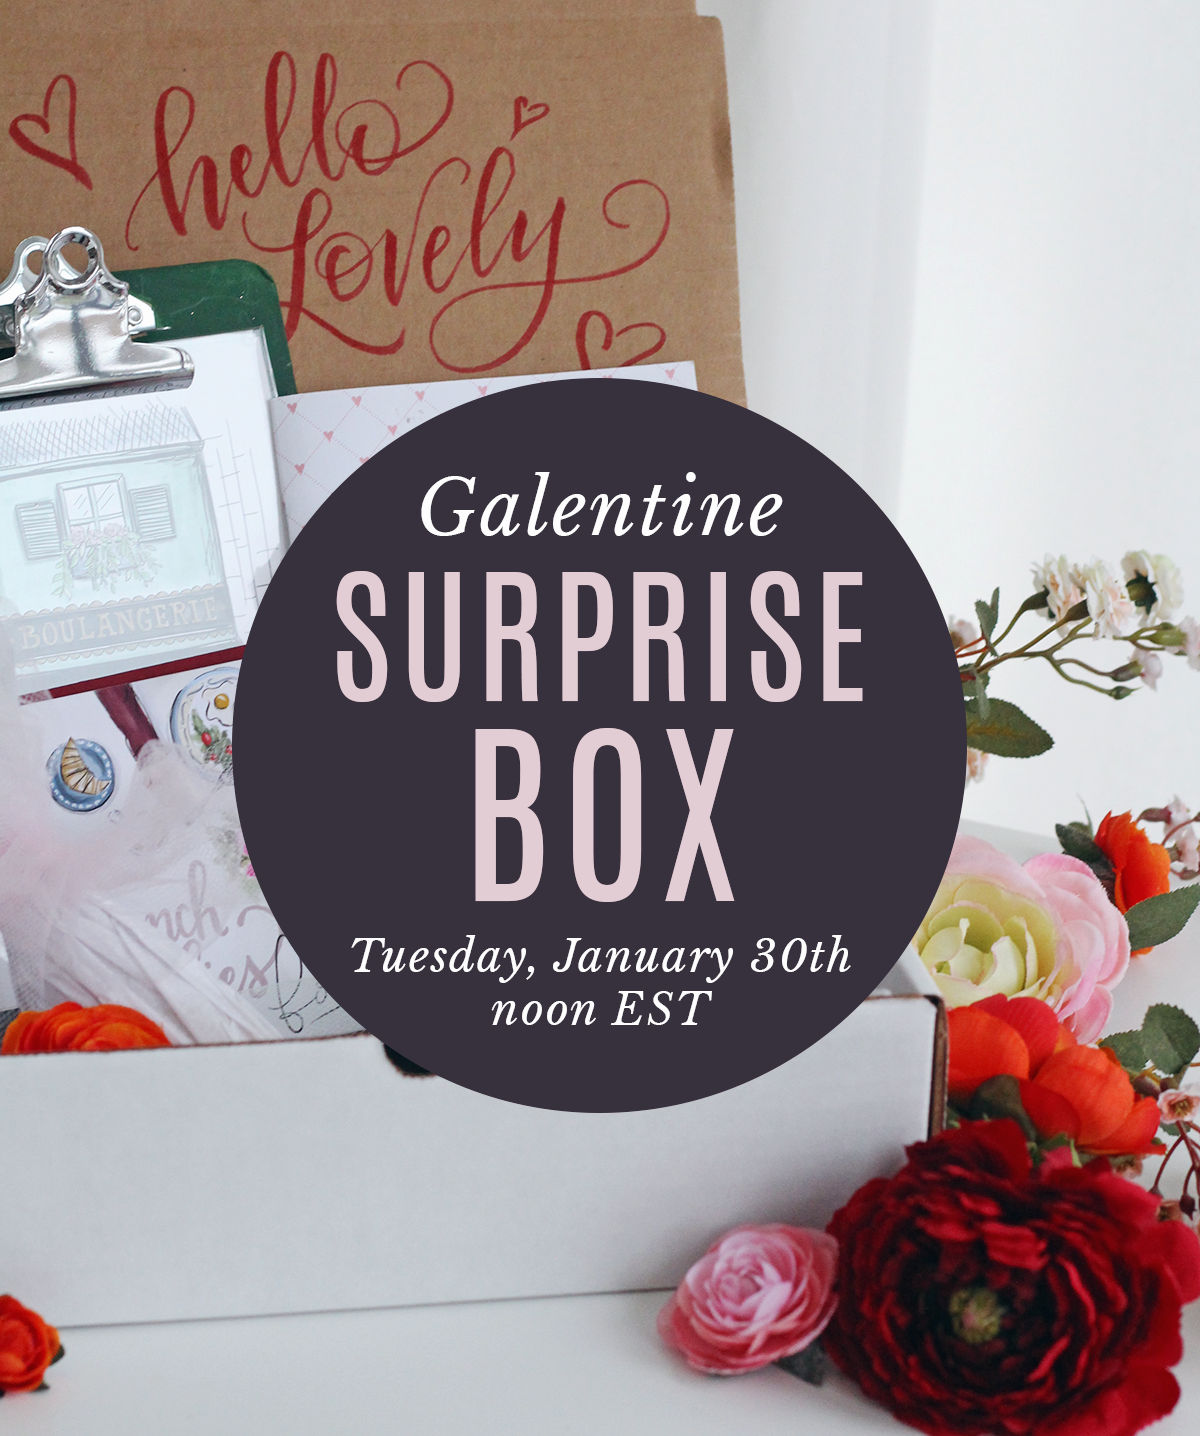 Galentine Surprise Box Launching on Tuesday, January 30th